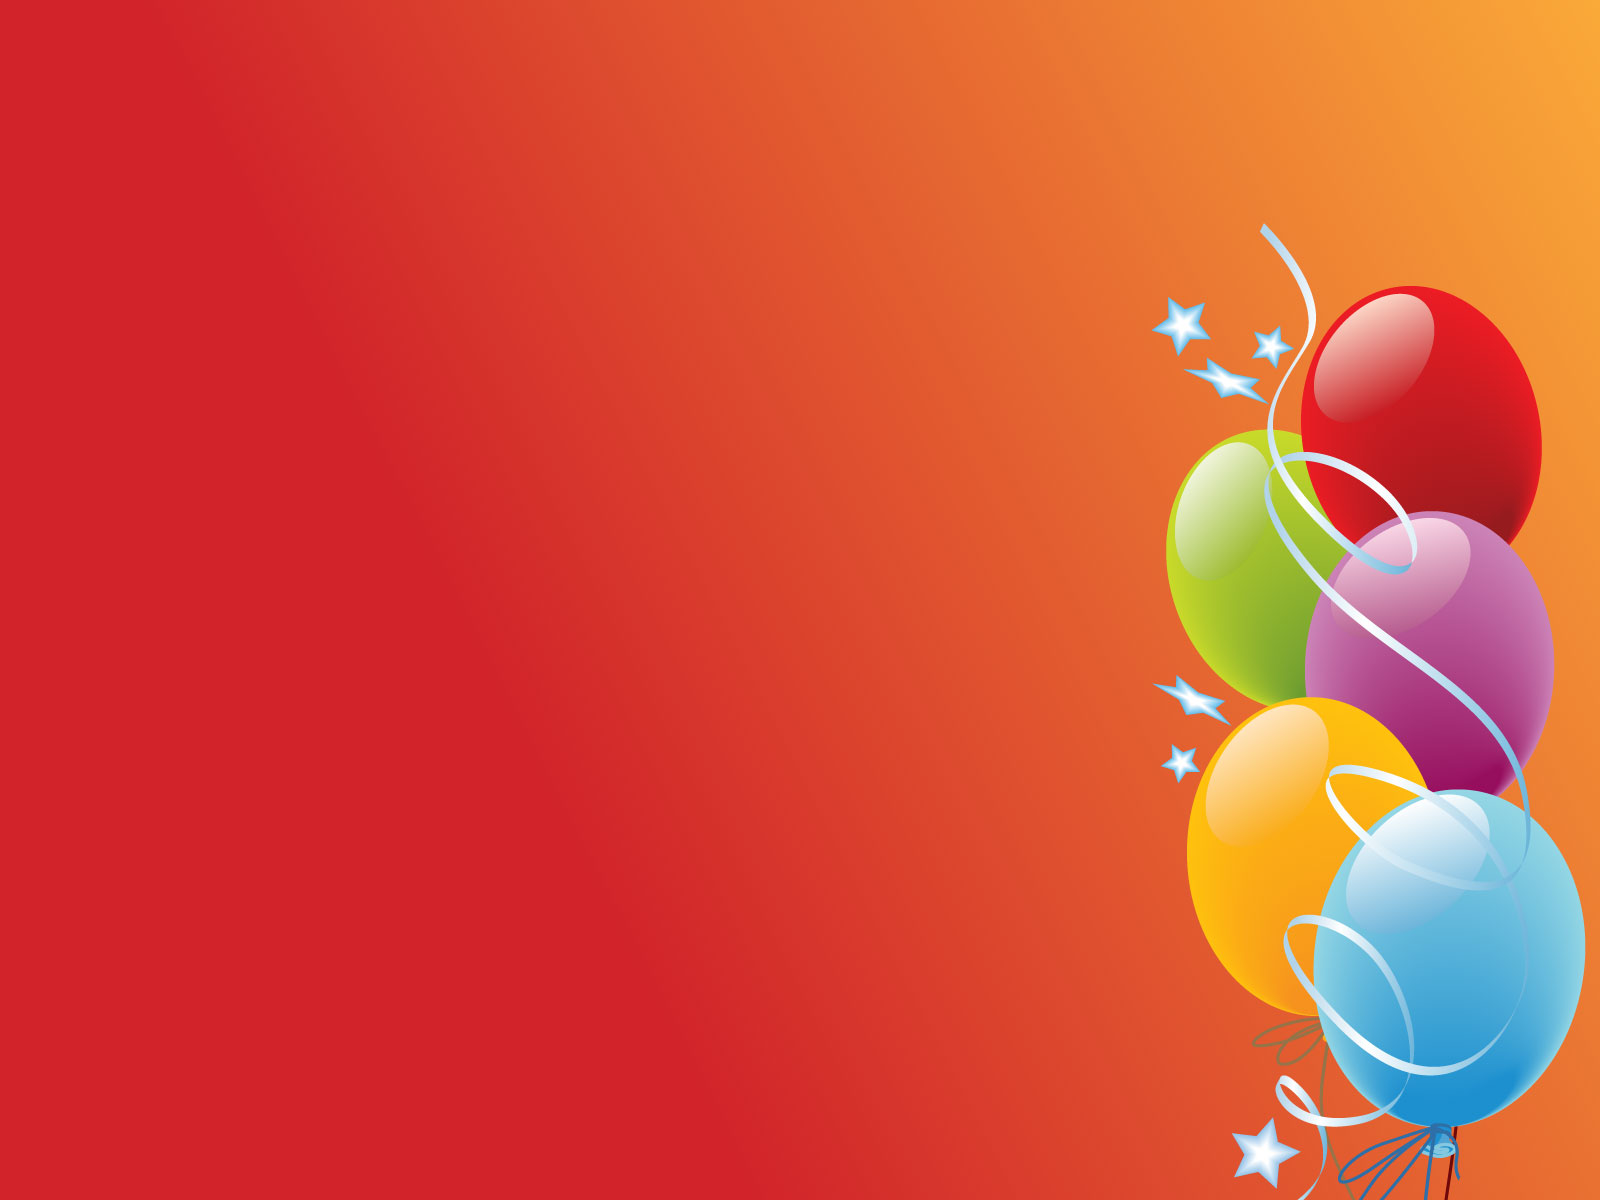 bday background wallpaper ; 017d9edd6e835250fbdccc010419b425_1000-images-about-backgrounds-balloons-clipart-birthday-pictures-background_1600-1200